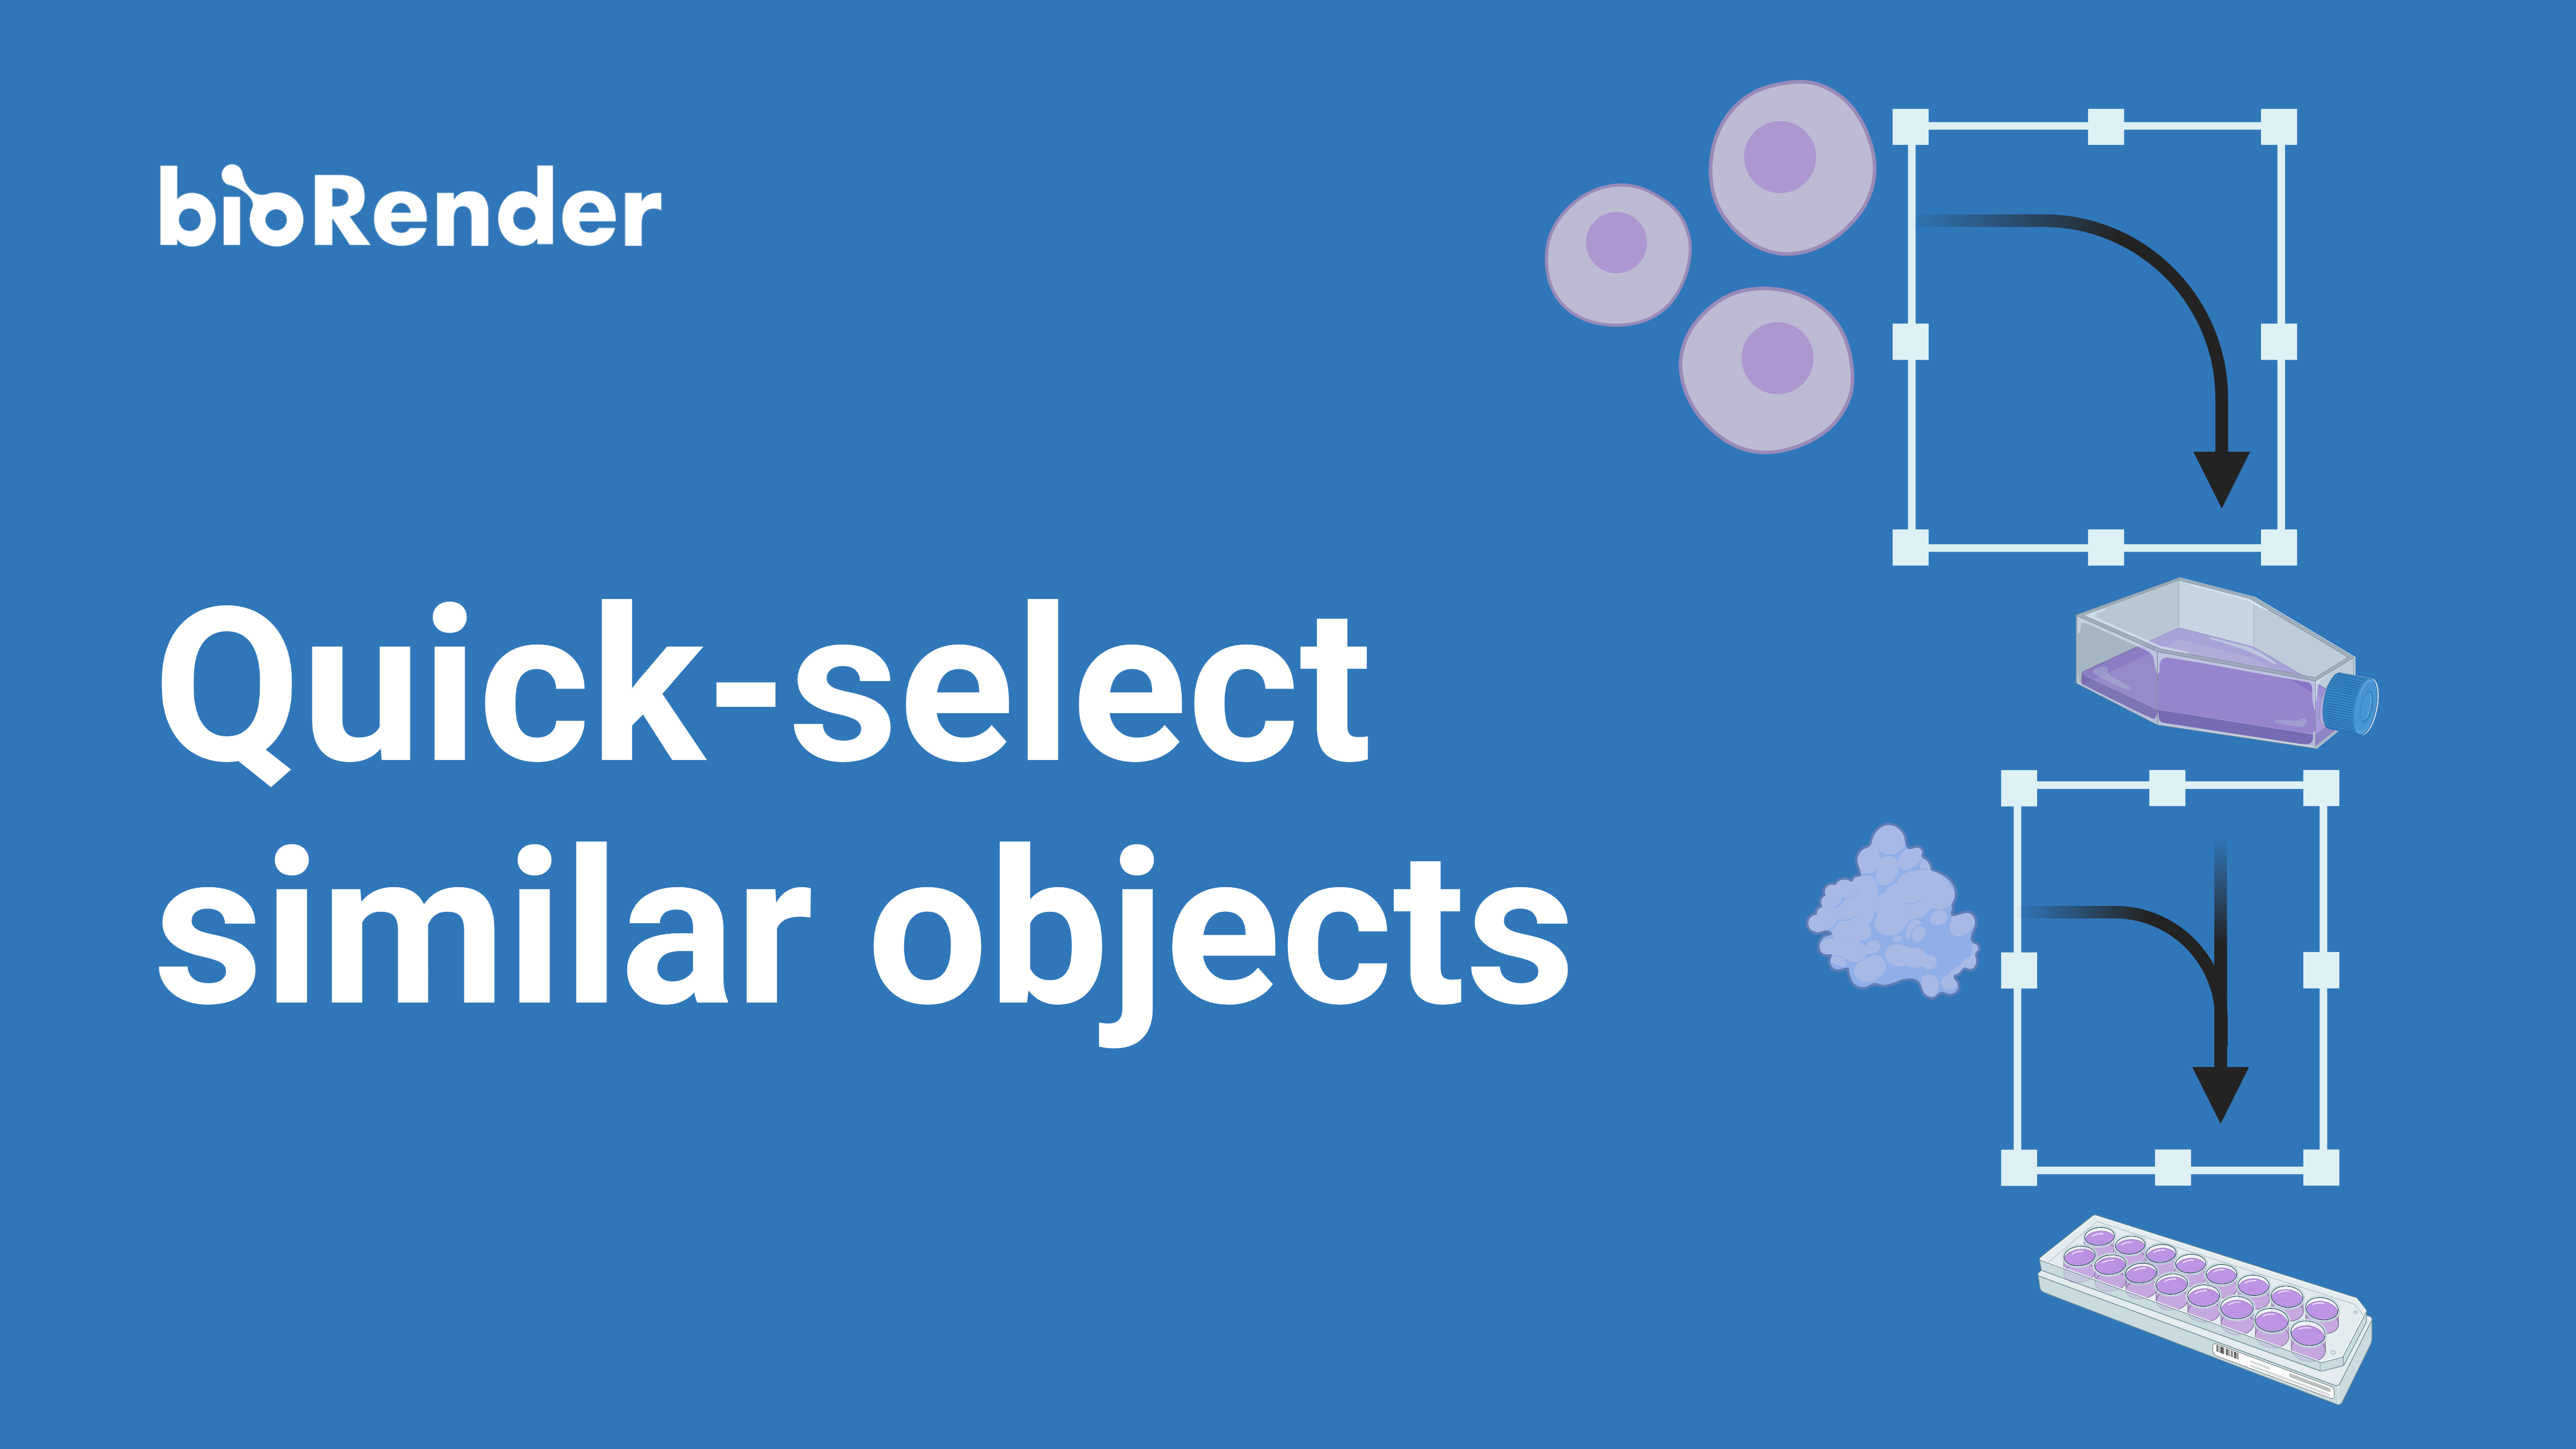 Quick-select similar objects